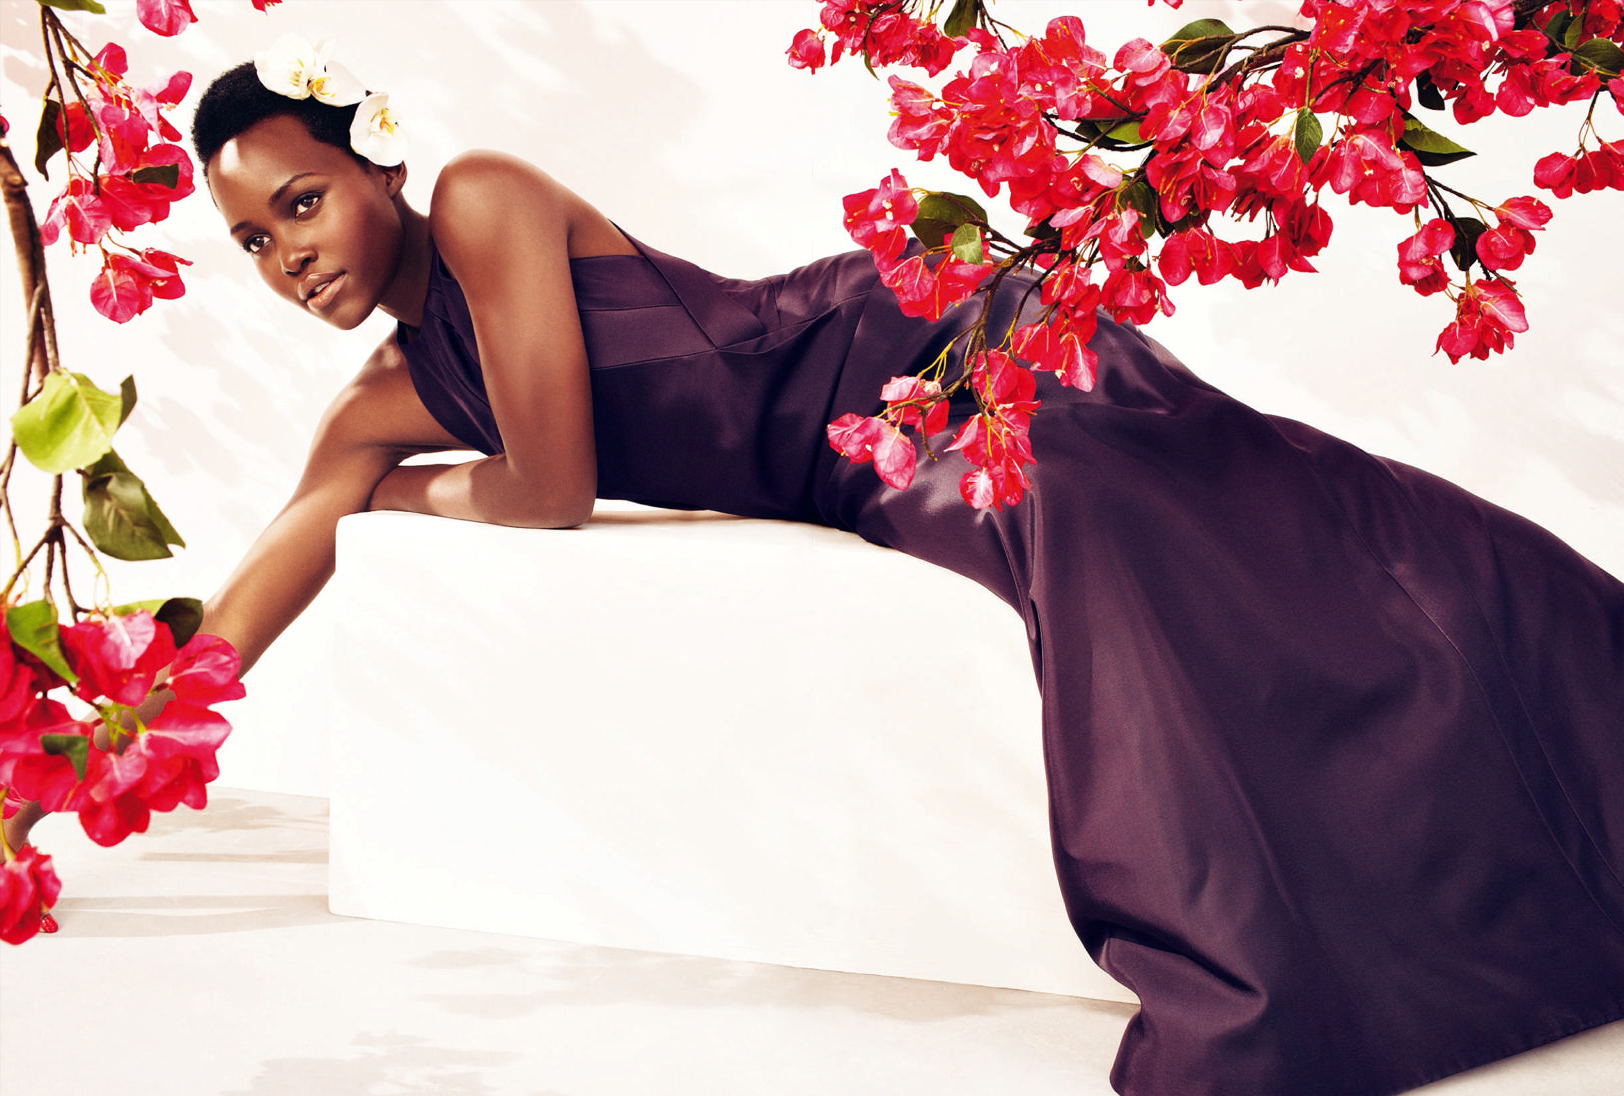 lupita-nyongo-by-alexi-lubomirski-for-harpers-bazaar-uk-may-2015-6.png